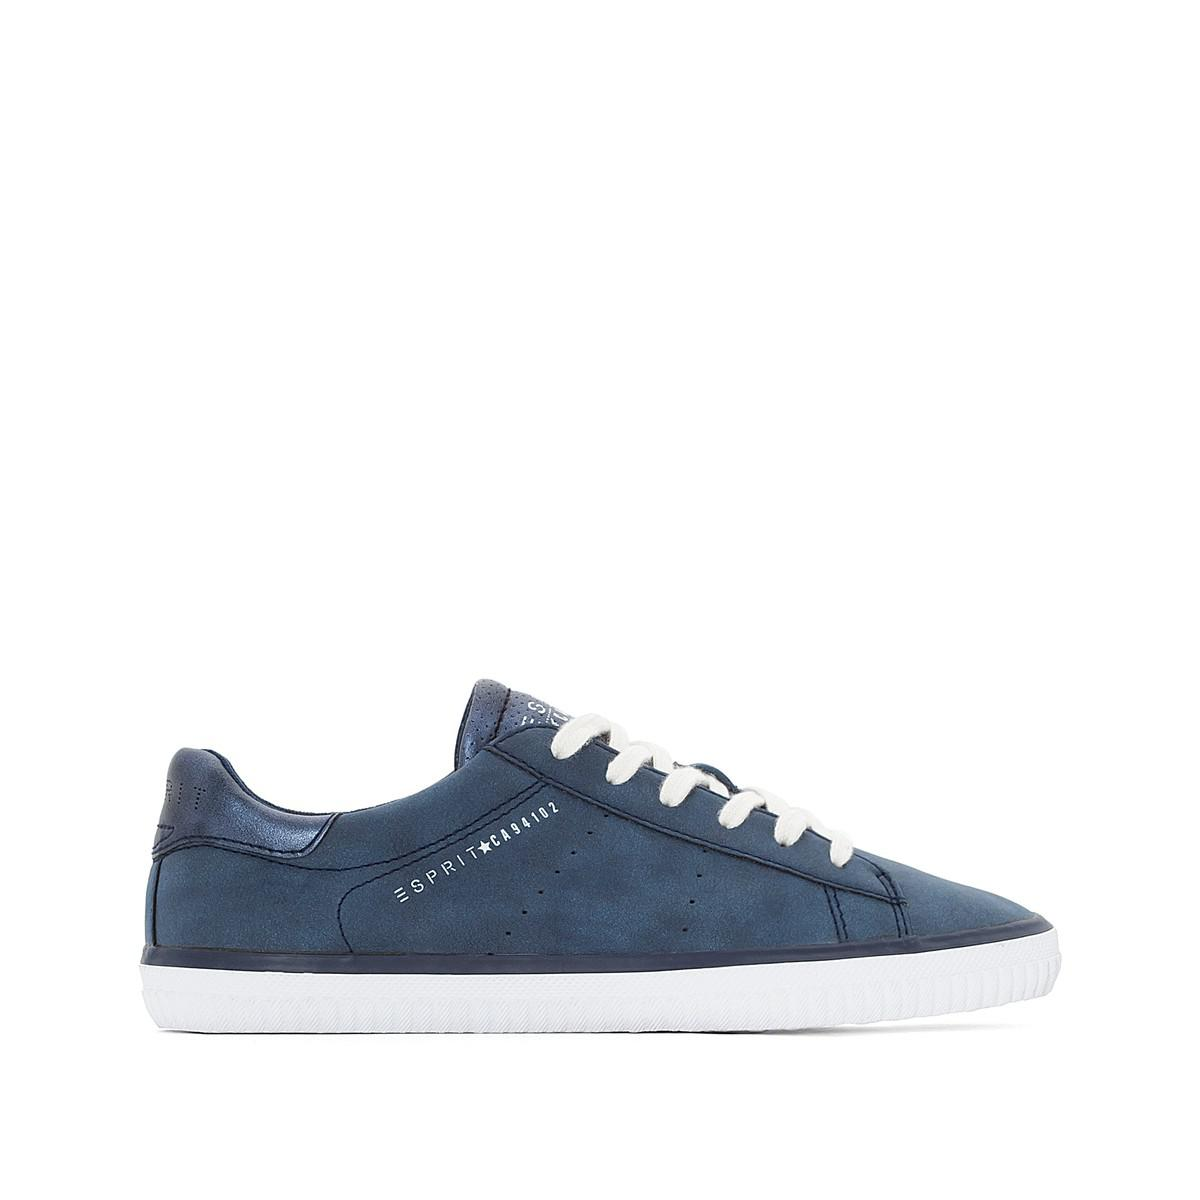 Esprit RIATA LACE UP - Trainers - navy HuTGB2suP